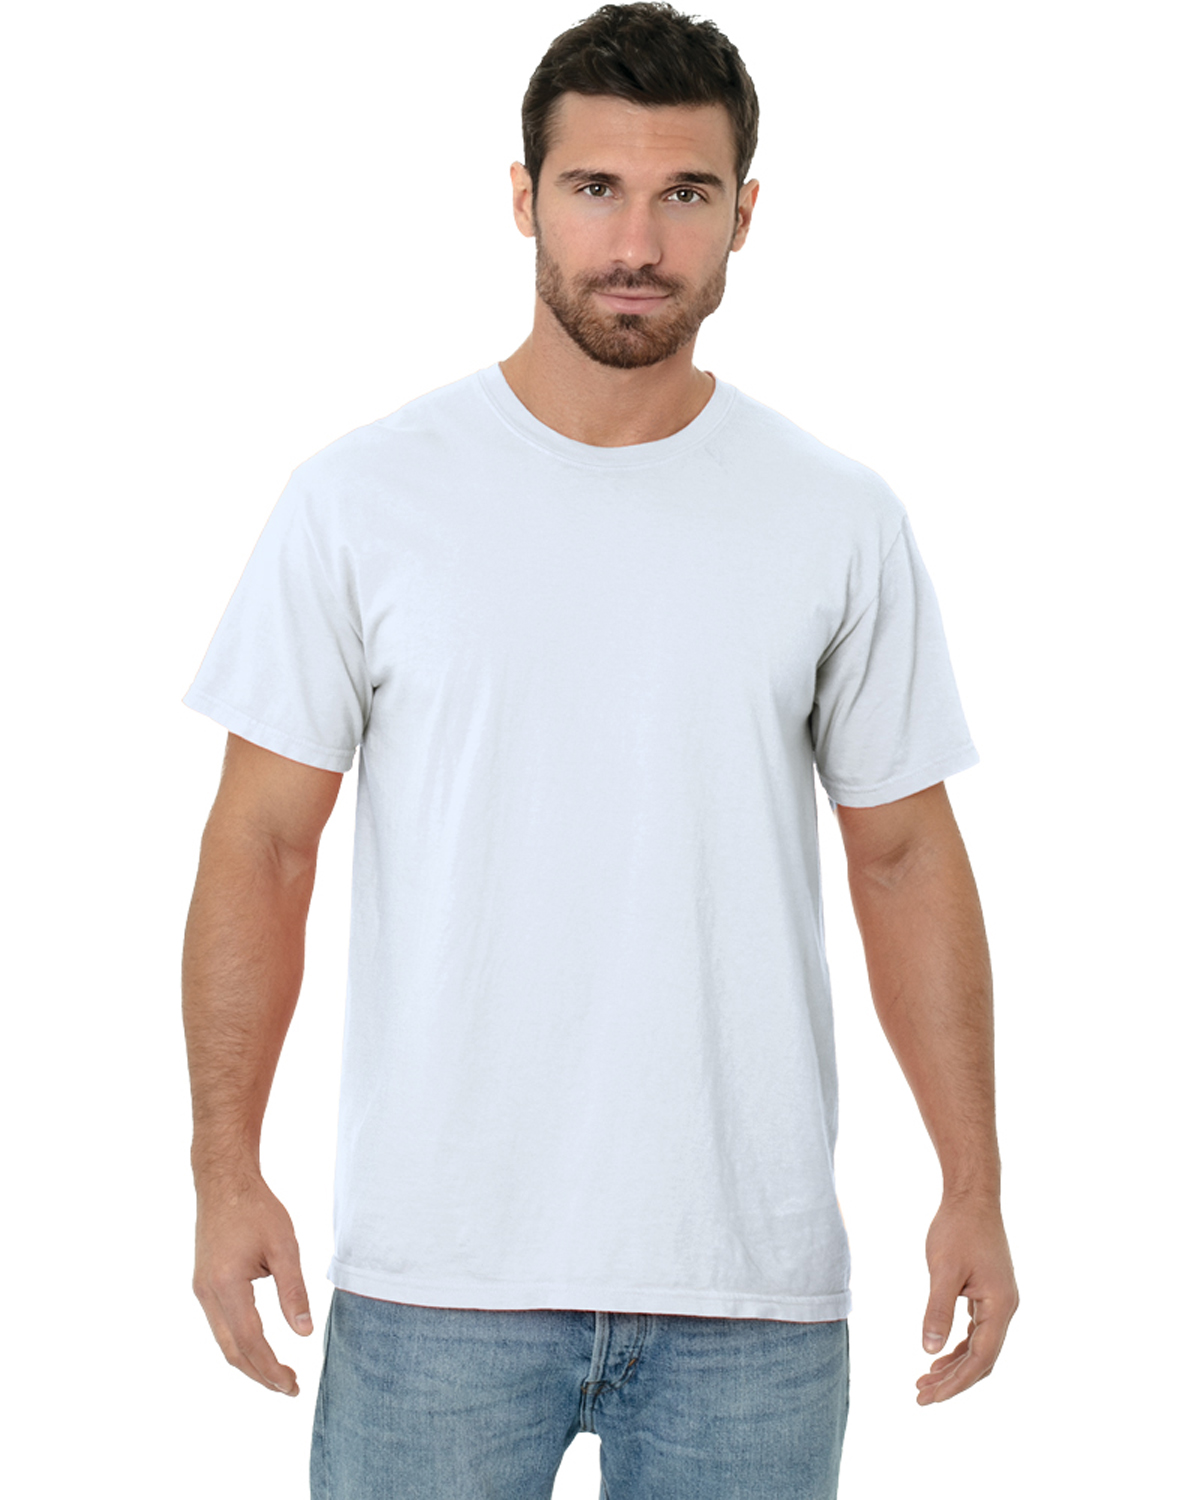 Unisex 5.9 oz., 100% Cotton Garment-Dyed T-Shirt